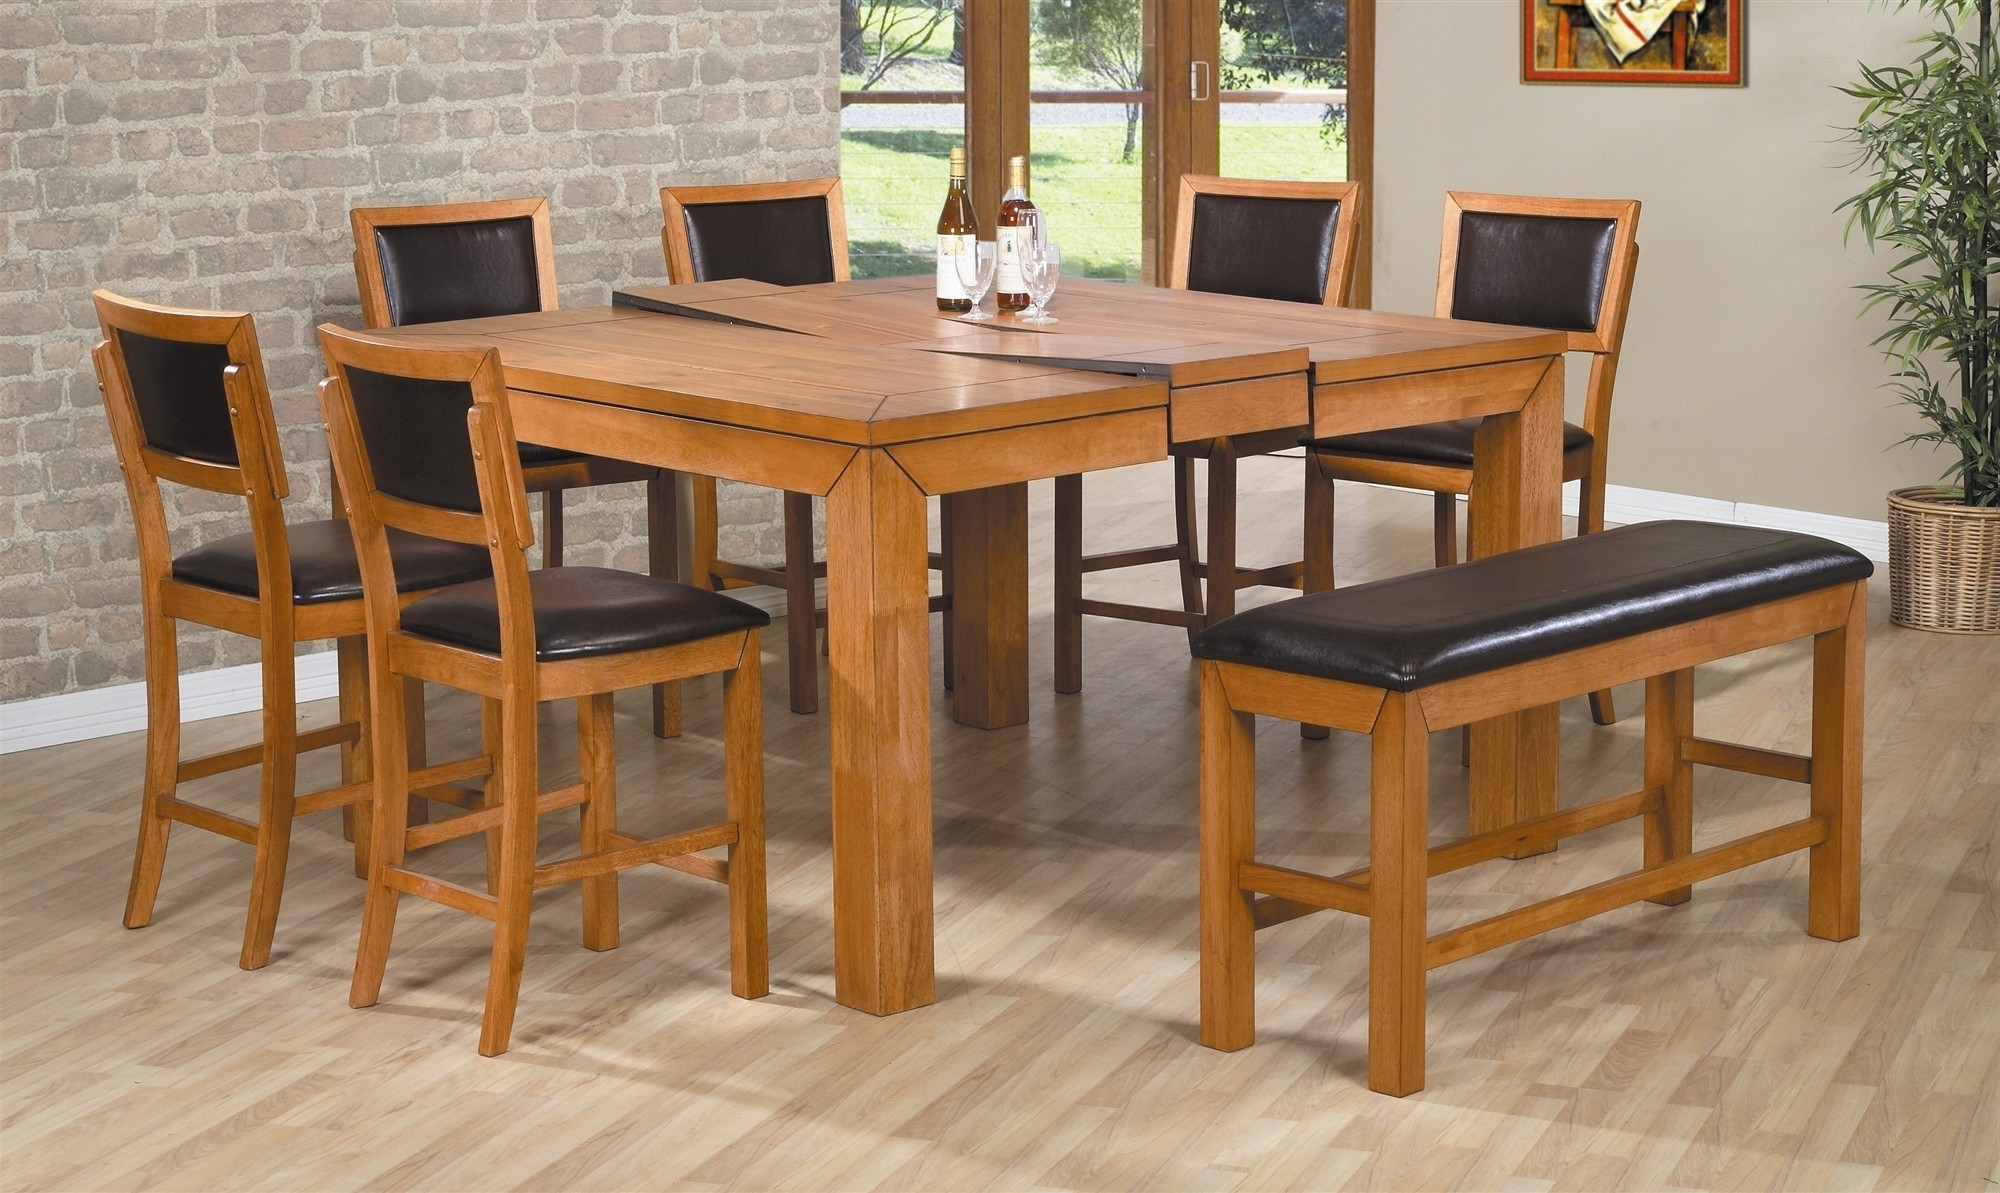 Small Extendable Dining Table Sets With Regard To Most Up To Date Extendable Dining Tables For Small Spaces Beautiful 15 New White (View 20 of 25)